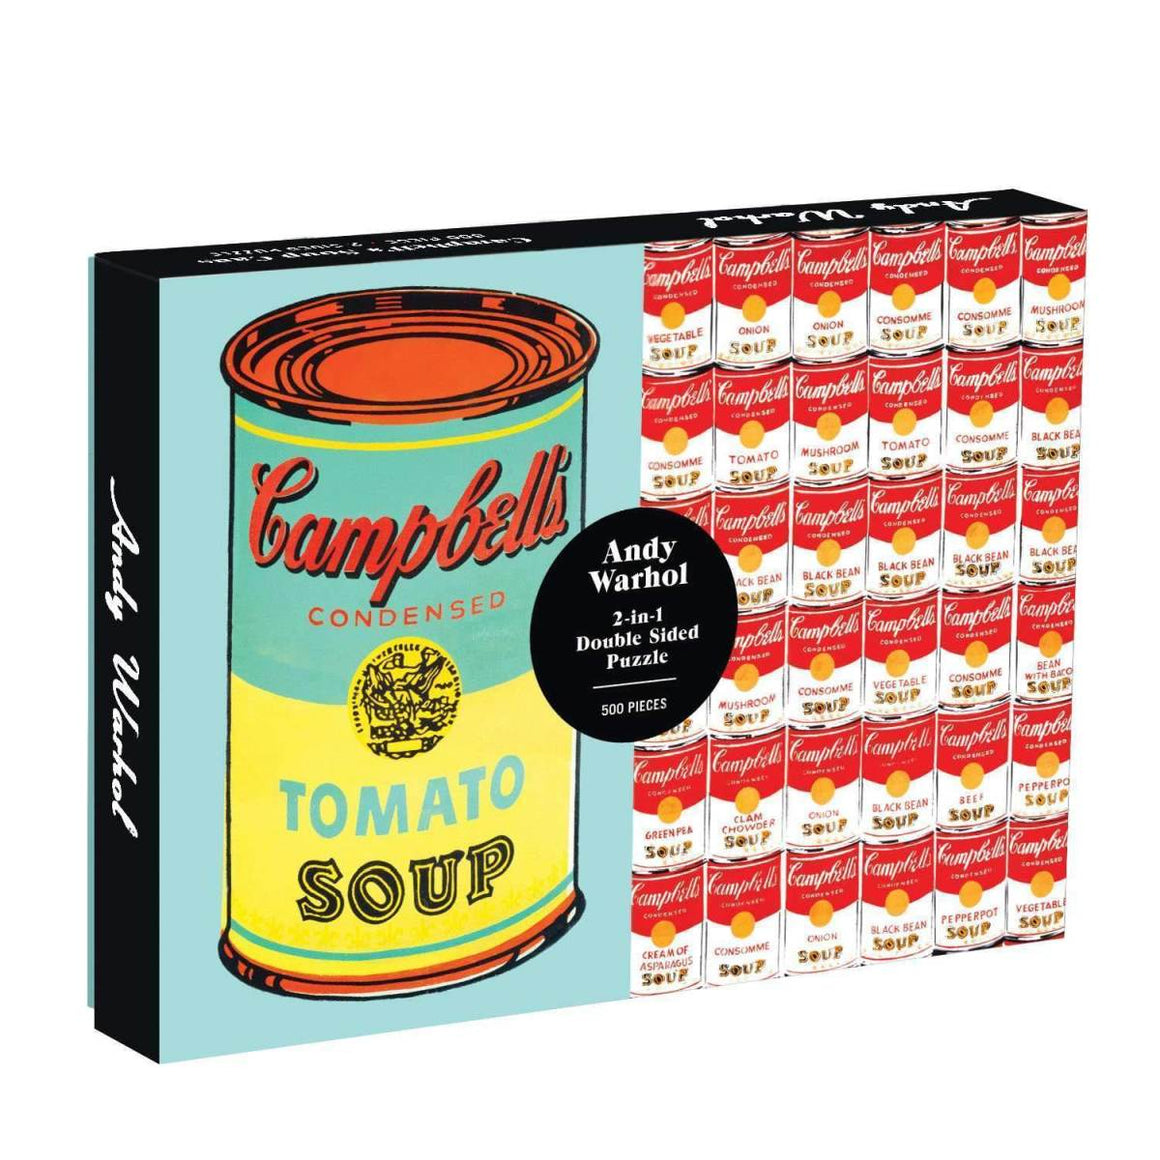 Puzzle | Andy Warhol Soup Cans | Double Sided | 500 Pieces